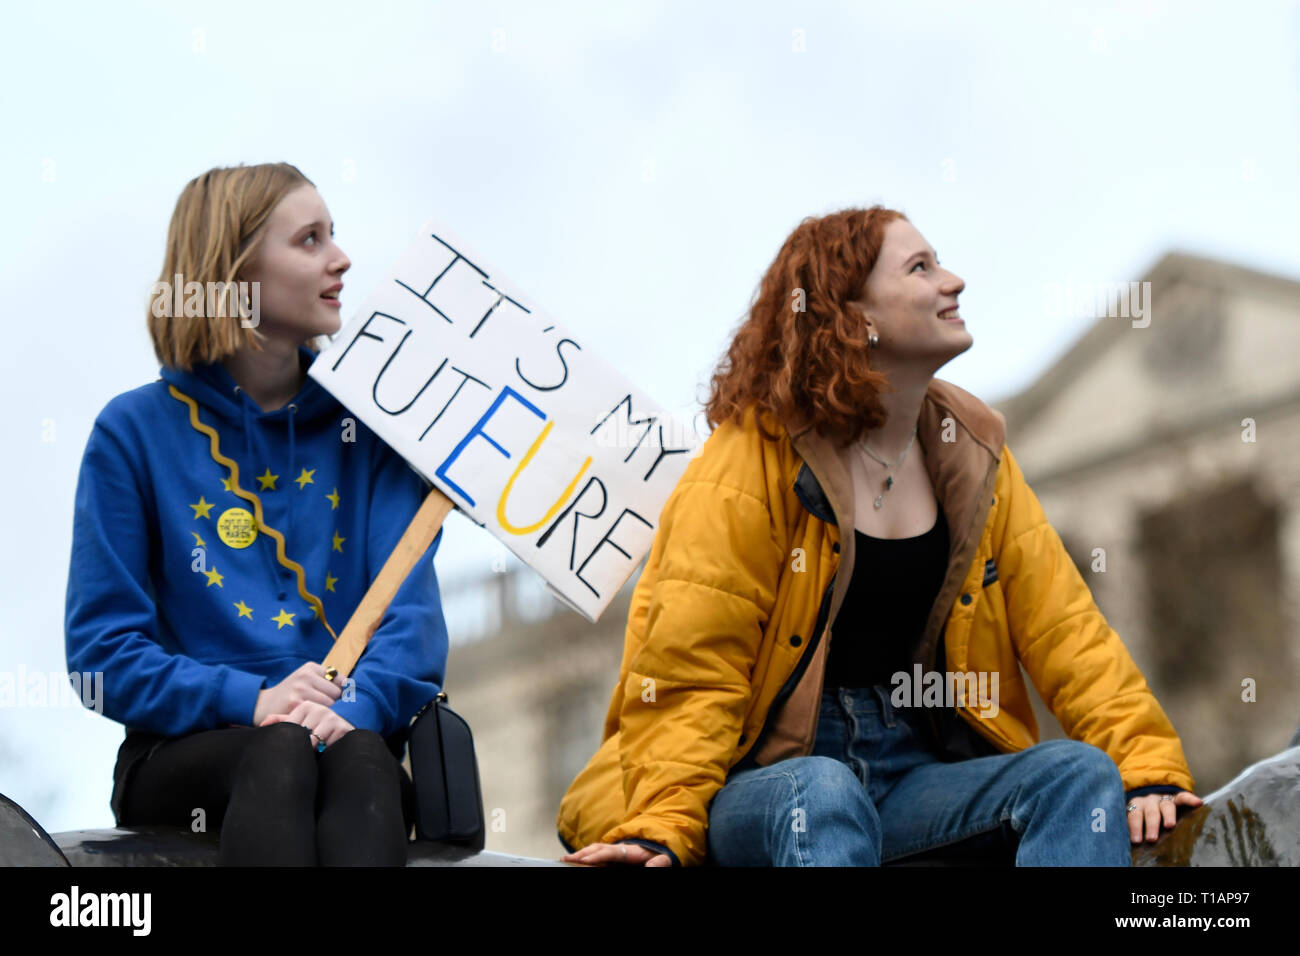 A protester seen holding a placard that says 'It's my futEUre' during the Put it to the demonstration. Over a million people marched peacefully in central London in favor of a second referendum. People gathered at Park Lane to rally at Parliament Square to demonstrate against the Tory government's Brexit negotiations, and to demand a second vote on the final Brexit deal. March was organized by The Peoples Vote. - Stock Image